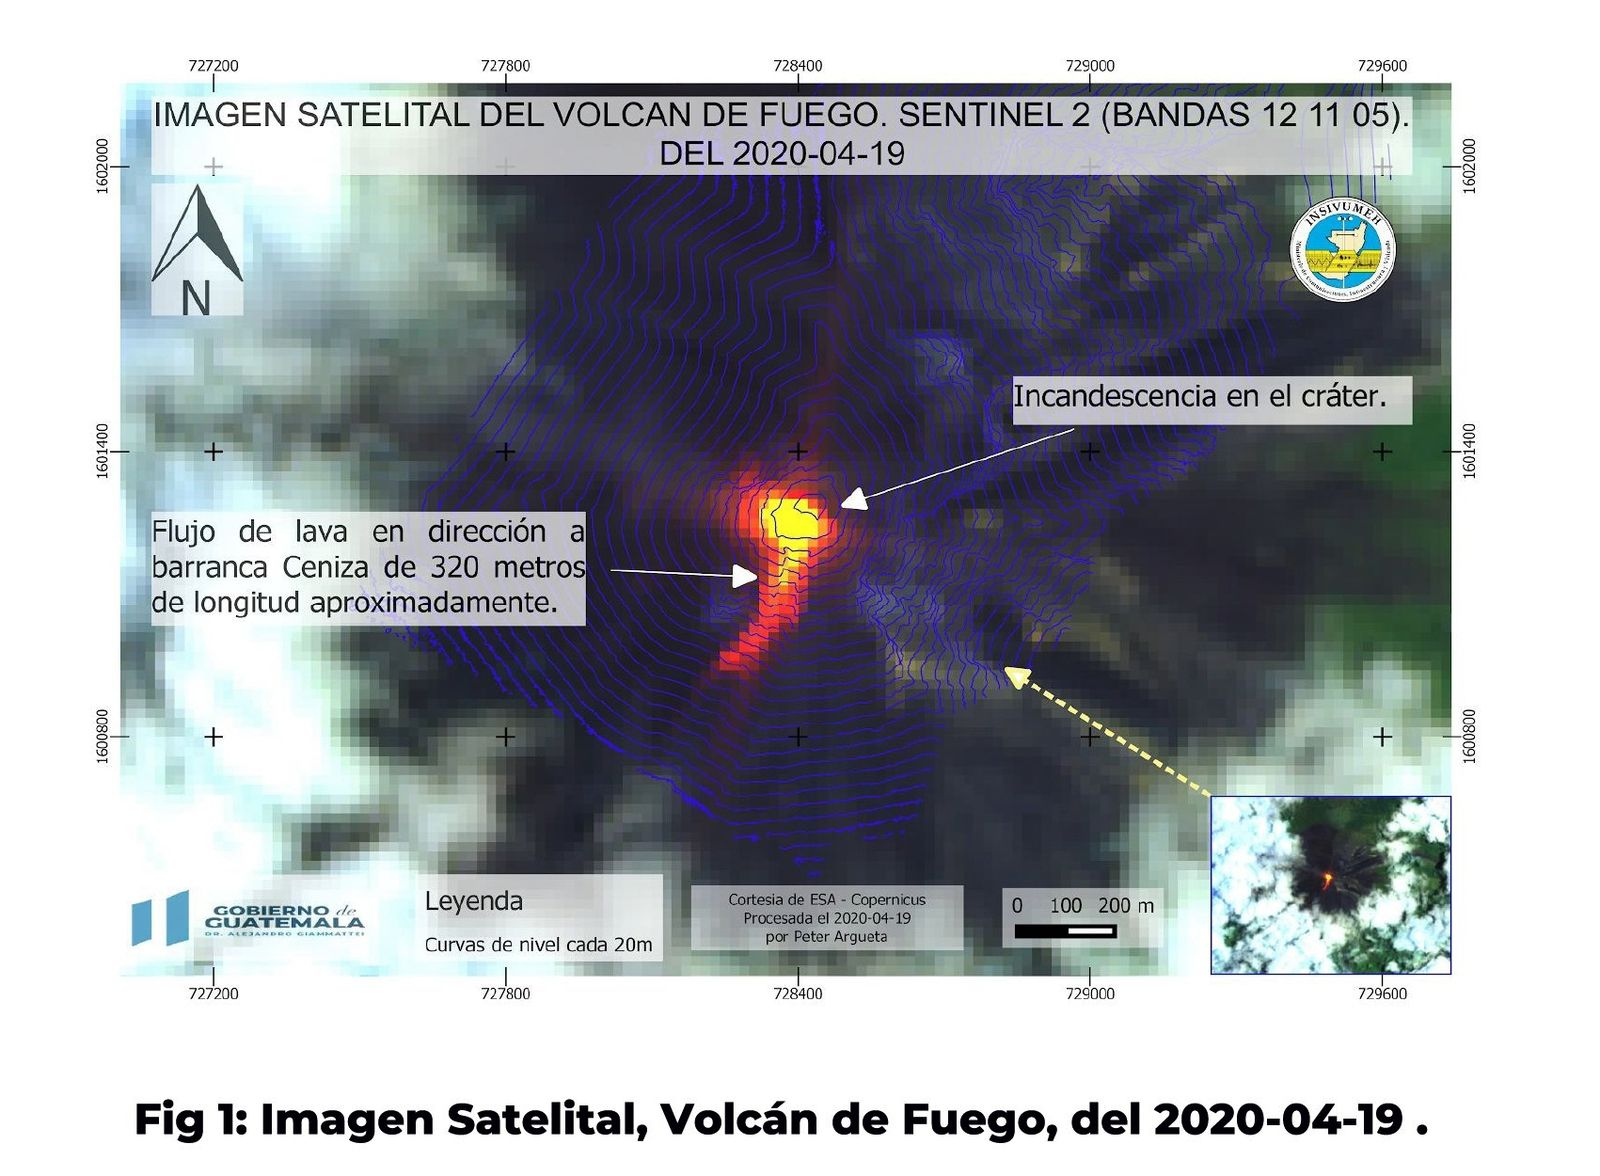 Fuego - lava flow on this satellite image bands 12,11,5 dated 19.04.2020 - Doc Insivumeh / Gobierno de Guatemala